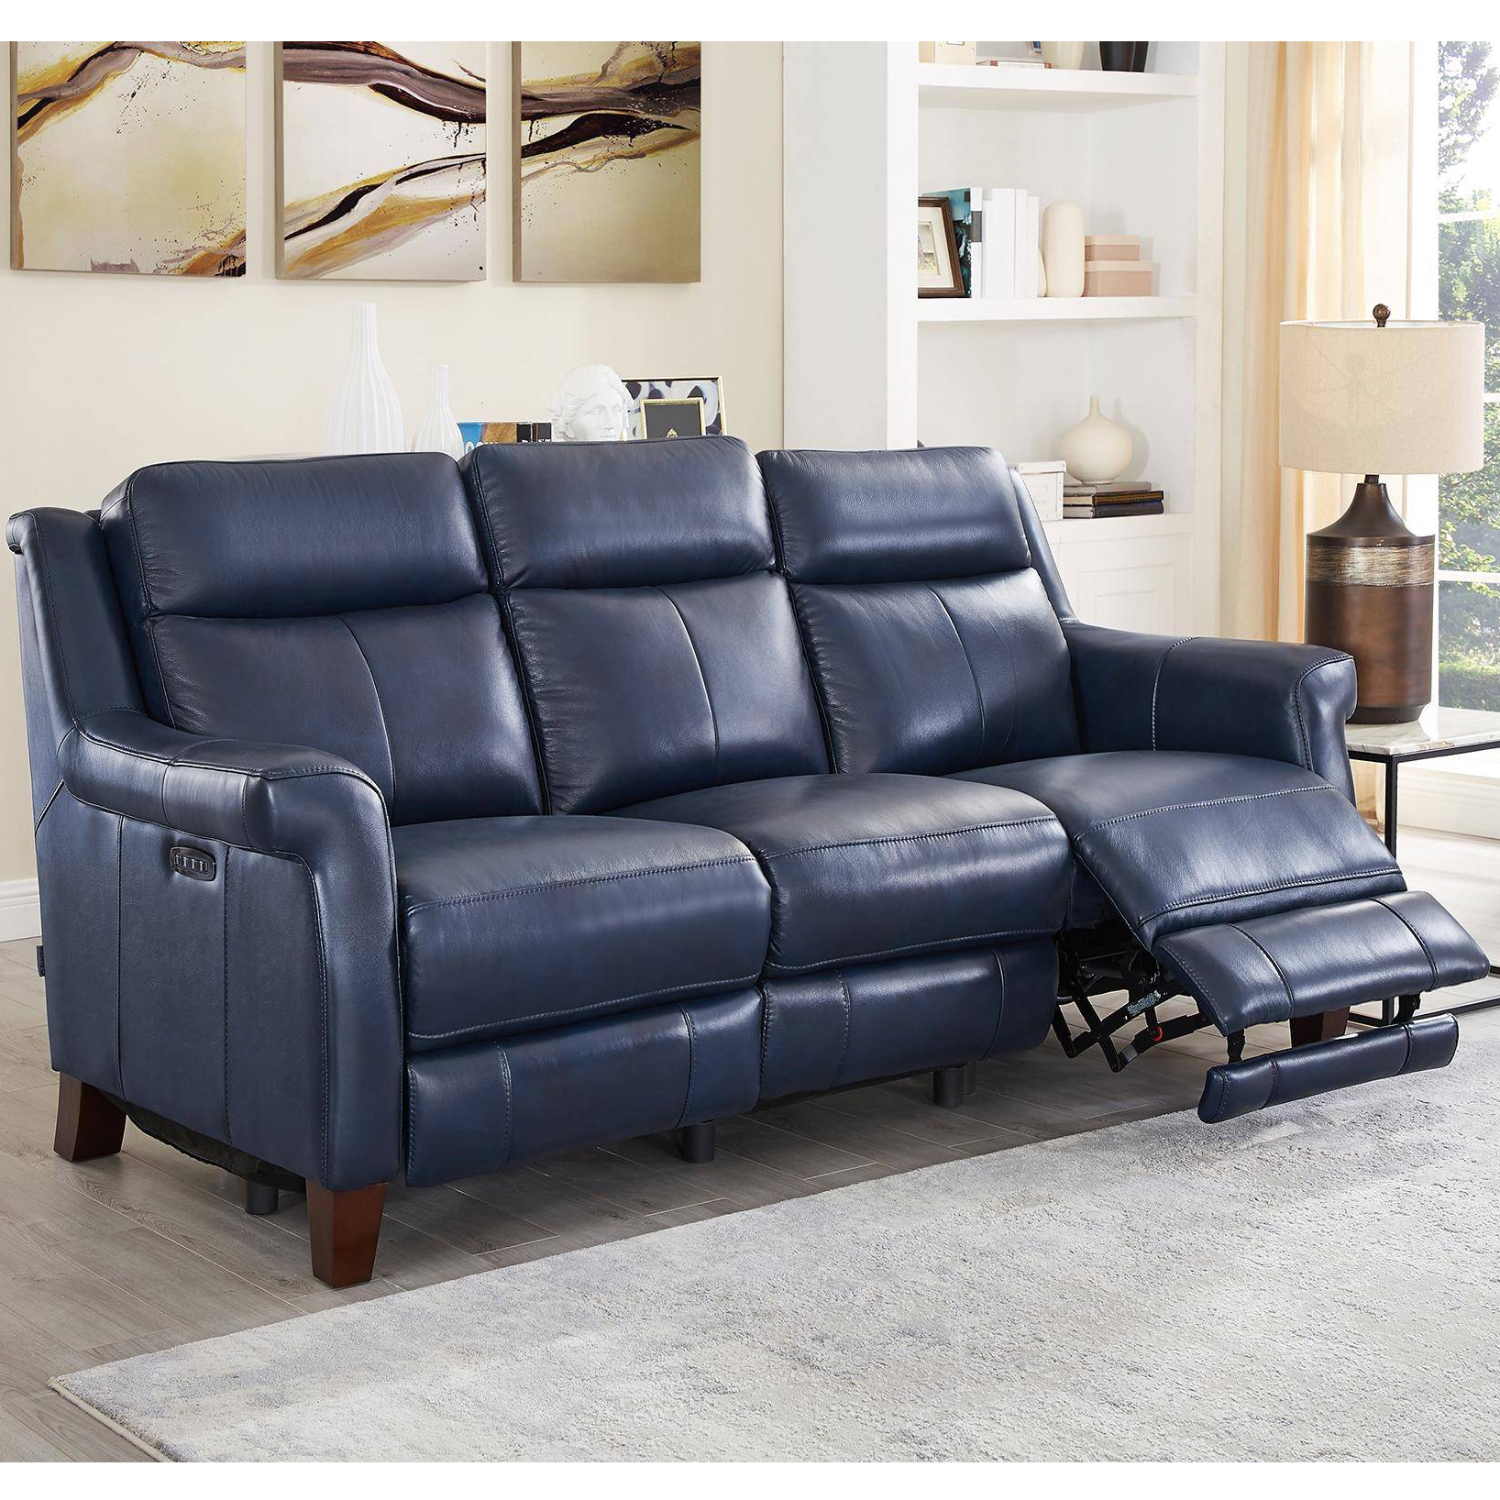 Navona Leather 3 Piece Set Power Reclining Sofa Loveseat Armchair In Blue By Hydeline Leather